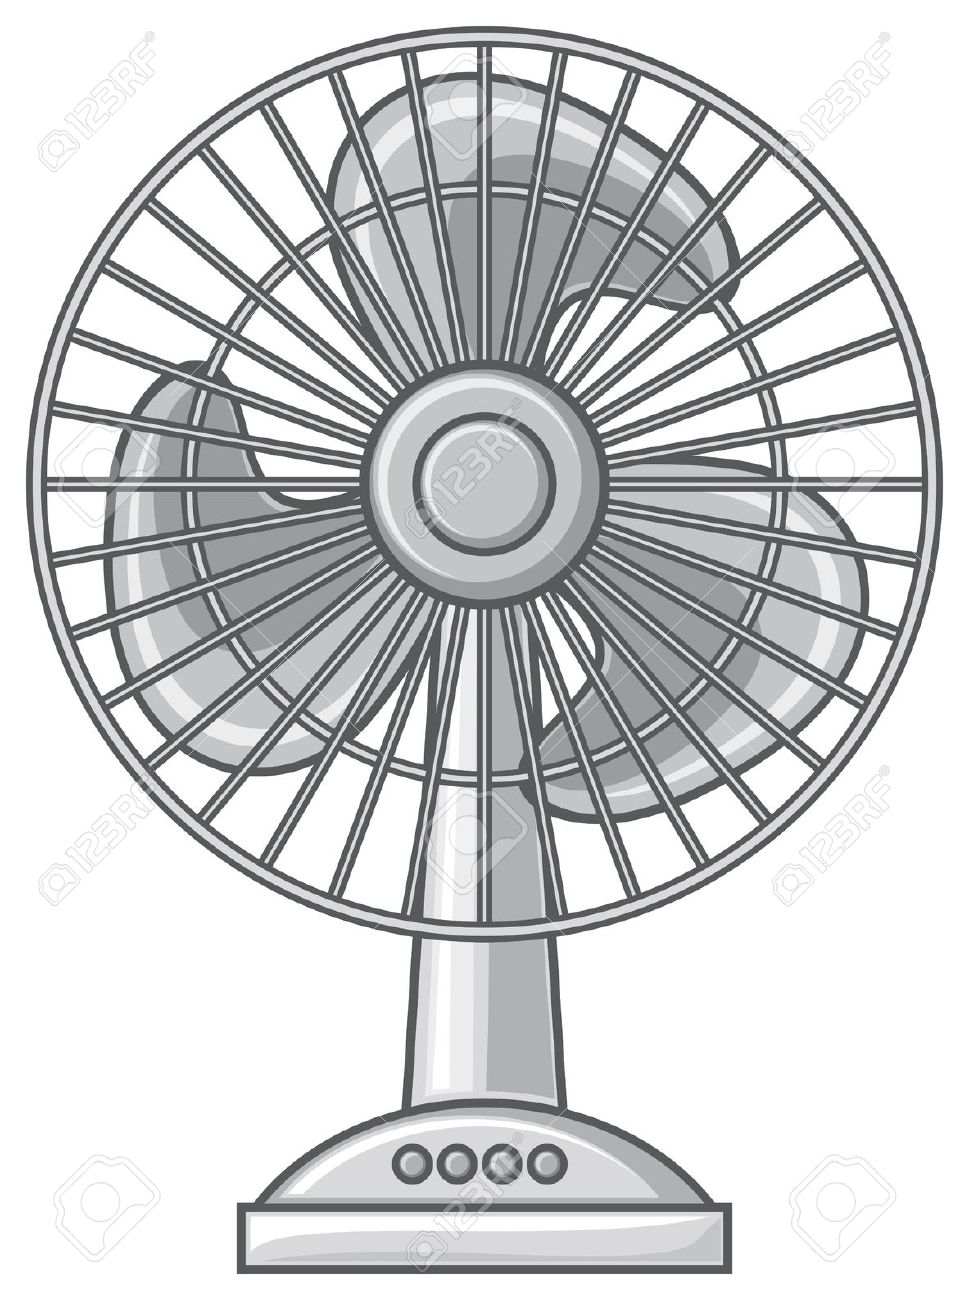 Electric fan clipart black and white.